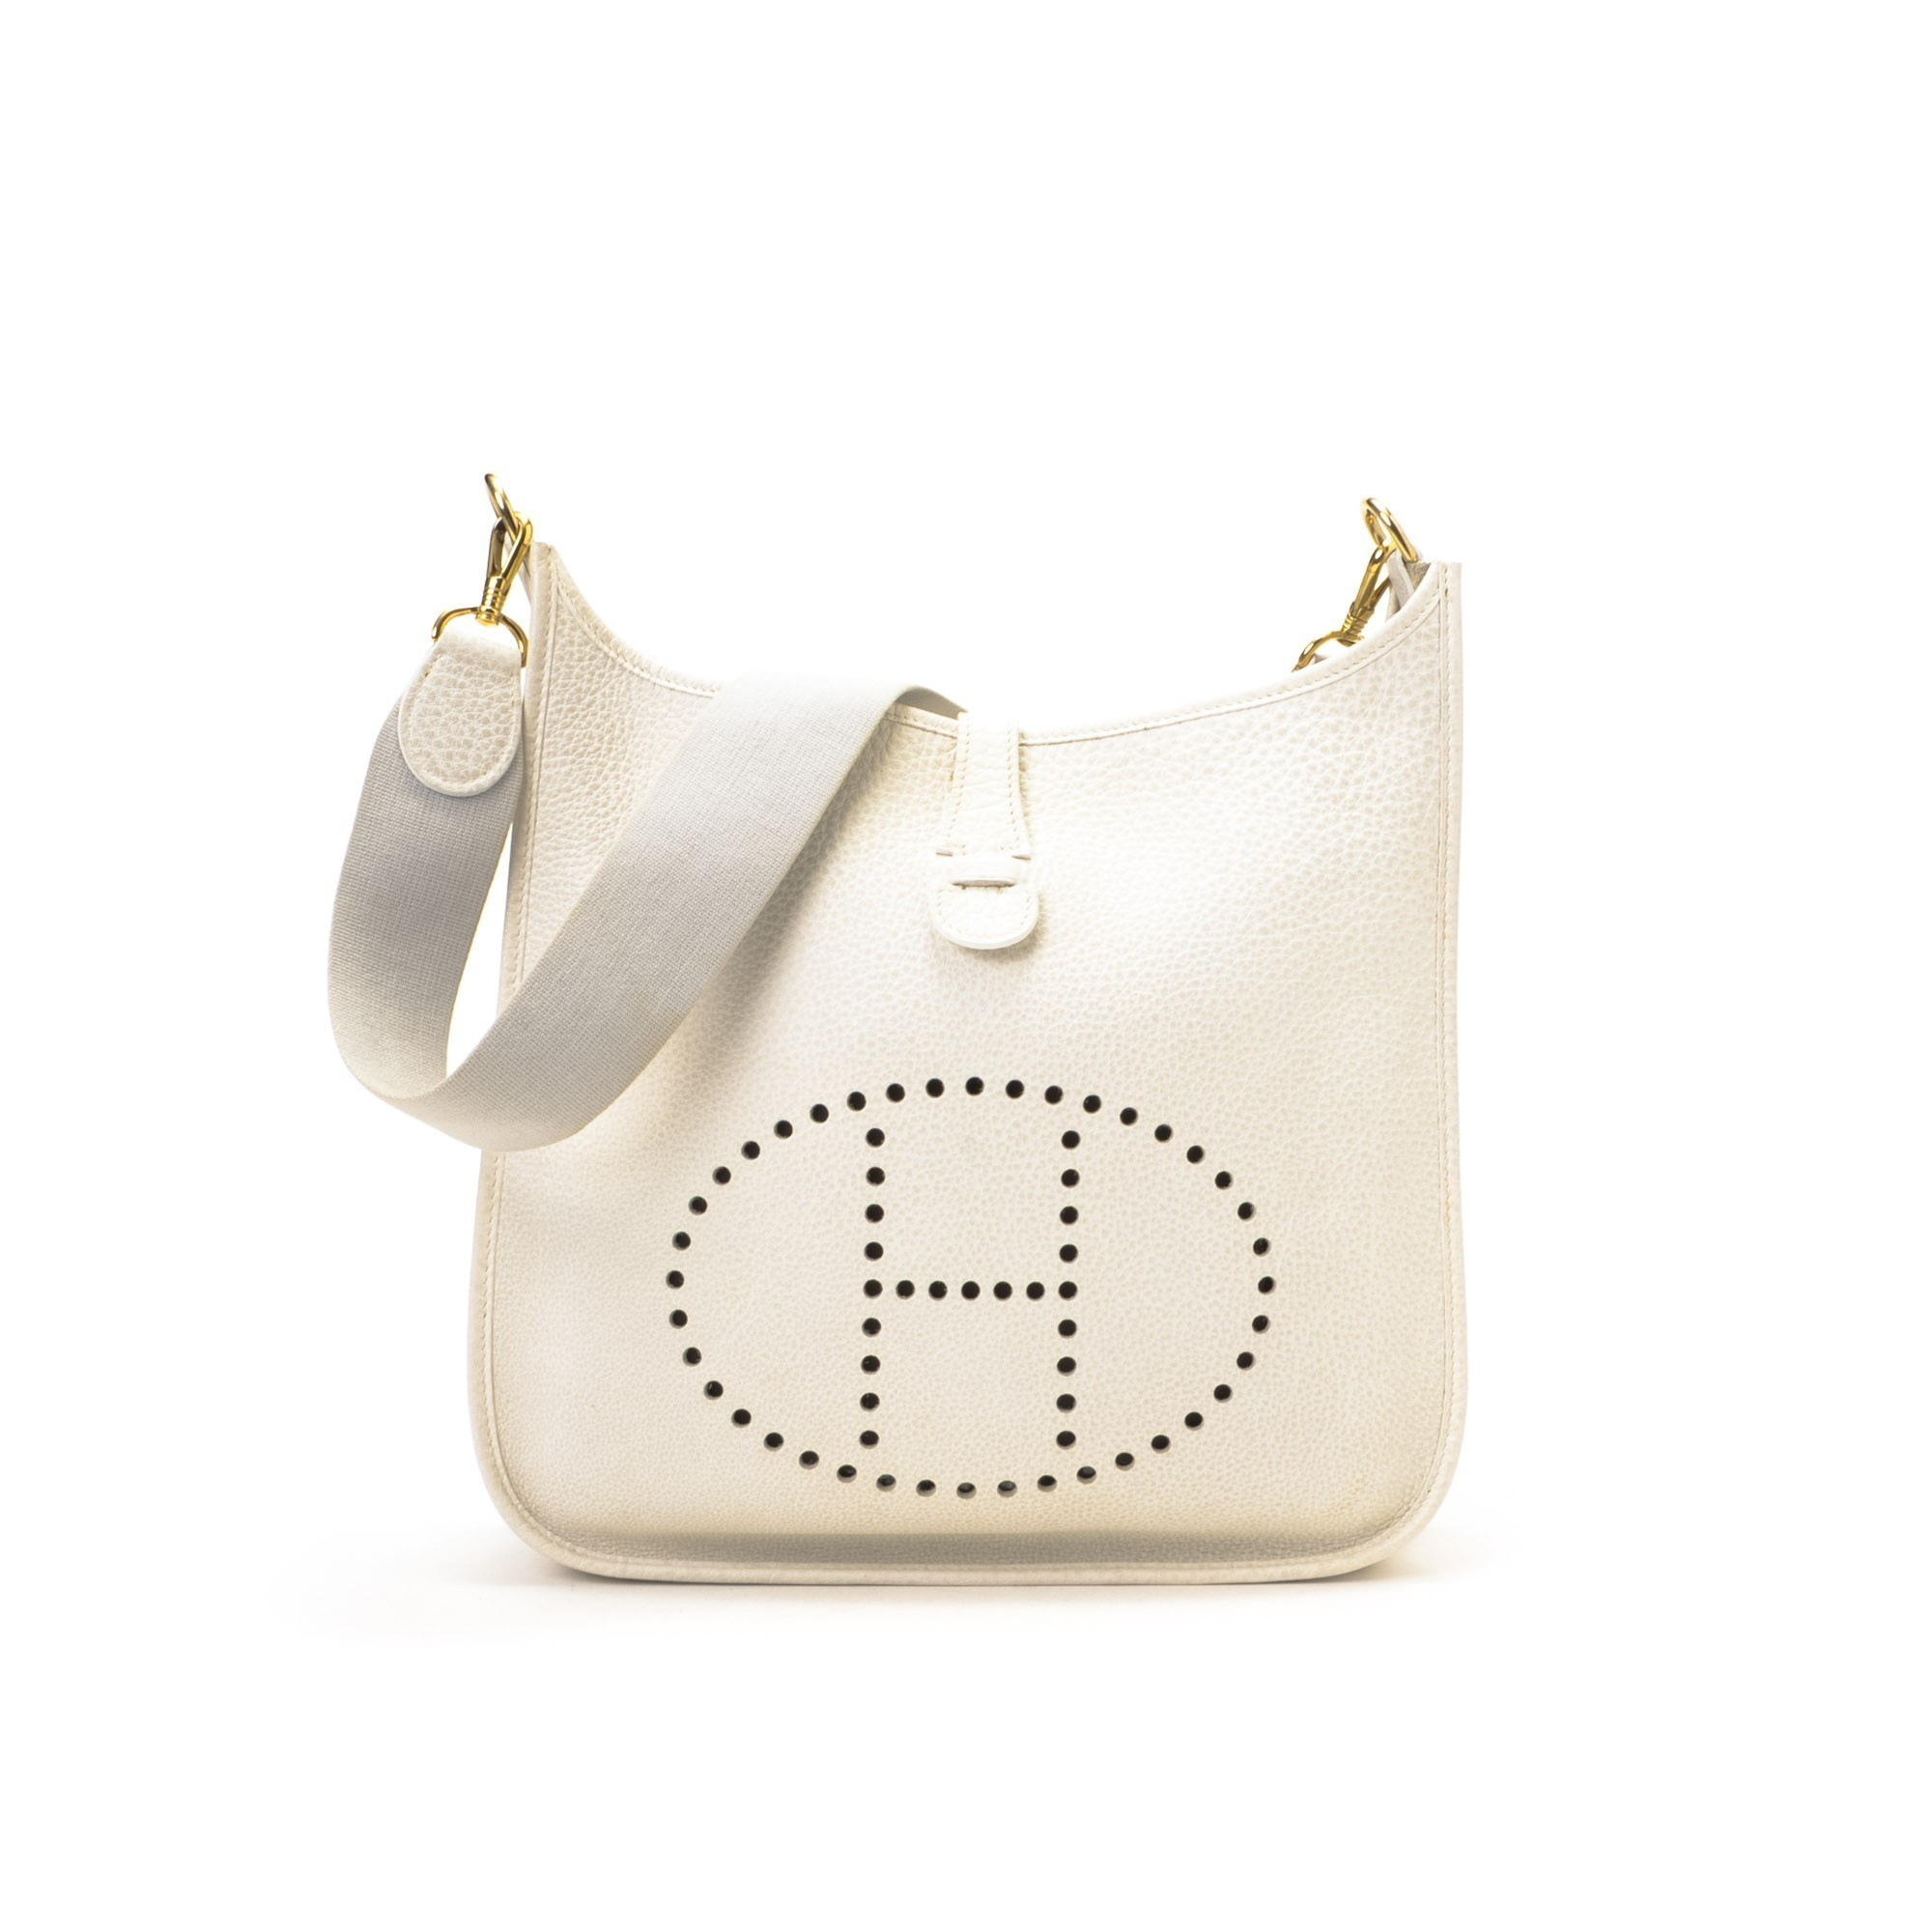 hermes wallet price - Herm��s Hermes Evelyne Evelyne GM White Buffalo Shoulder Bag ...